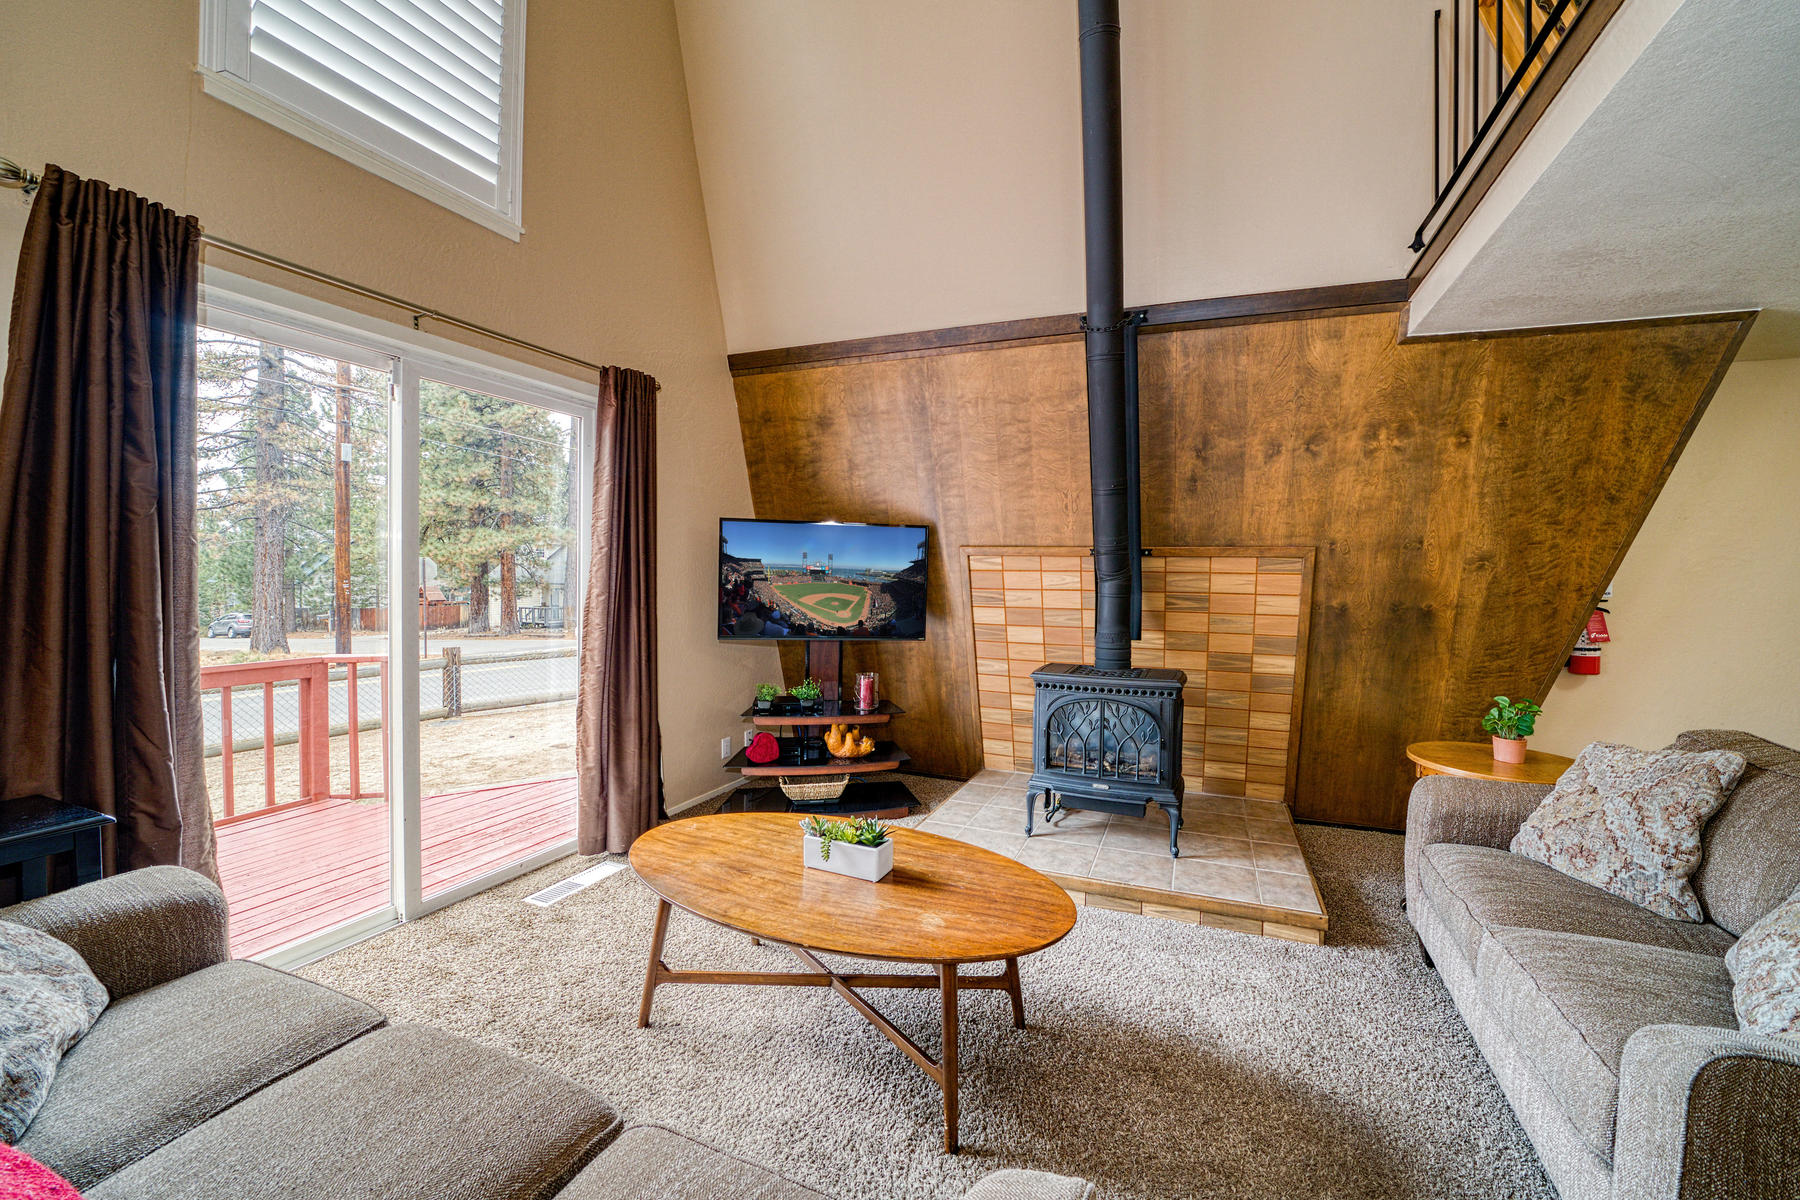 Additional photo for property listing at Al Tahoe Charmer 3046 Bellevue Ave South Lake Tahoe, California 96150 United States